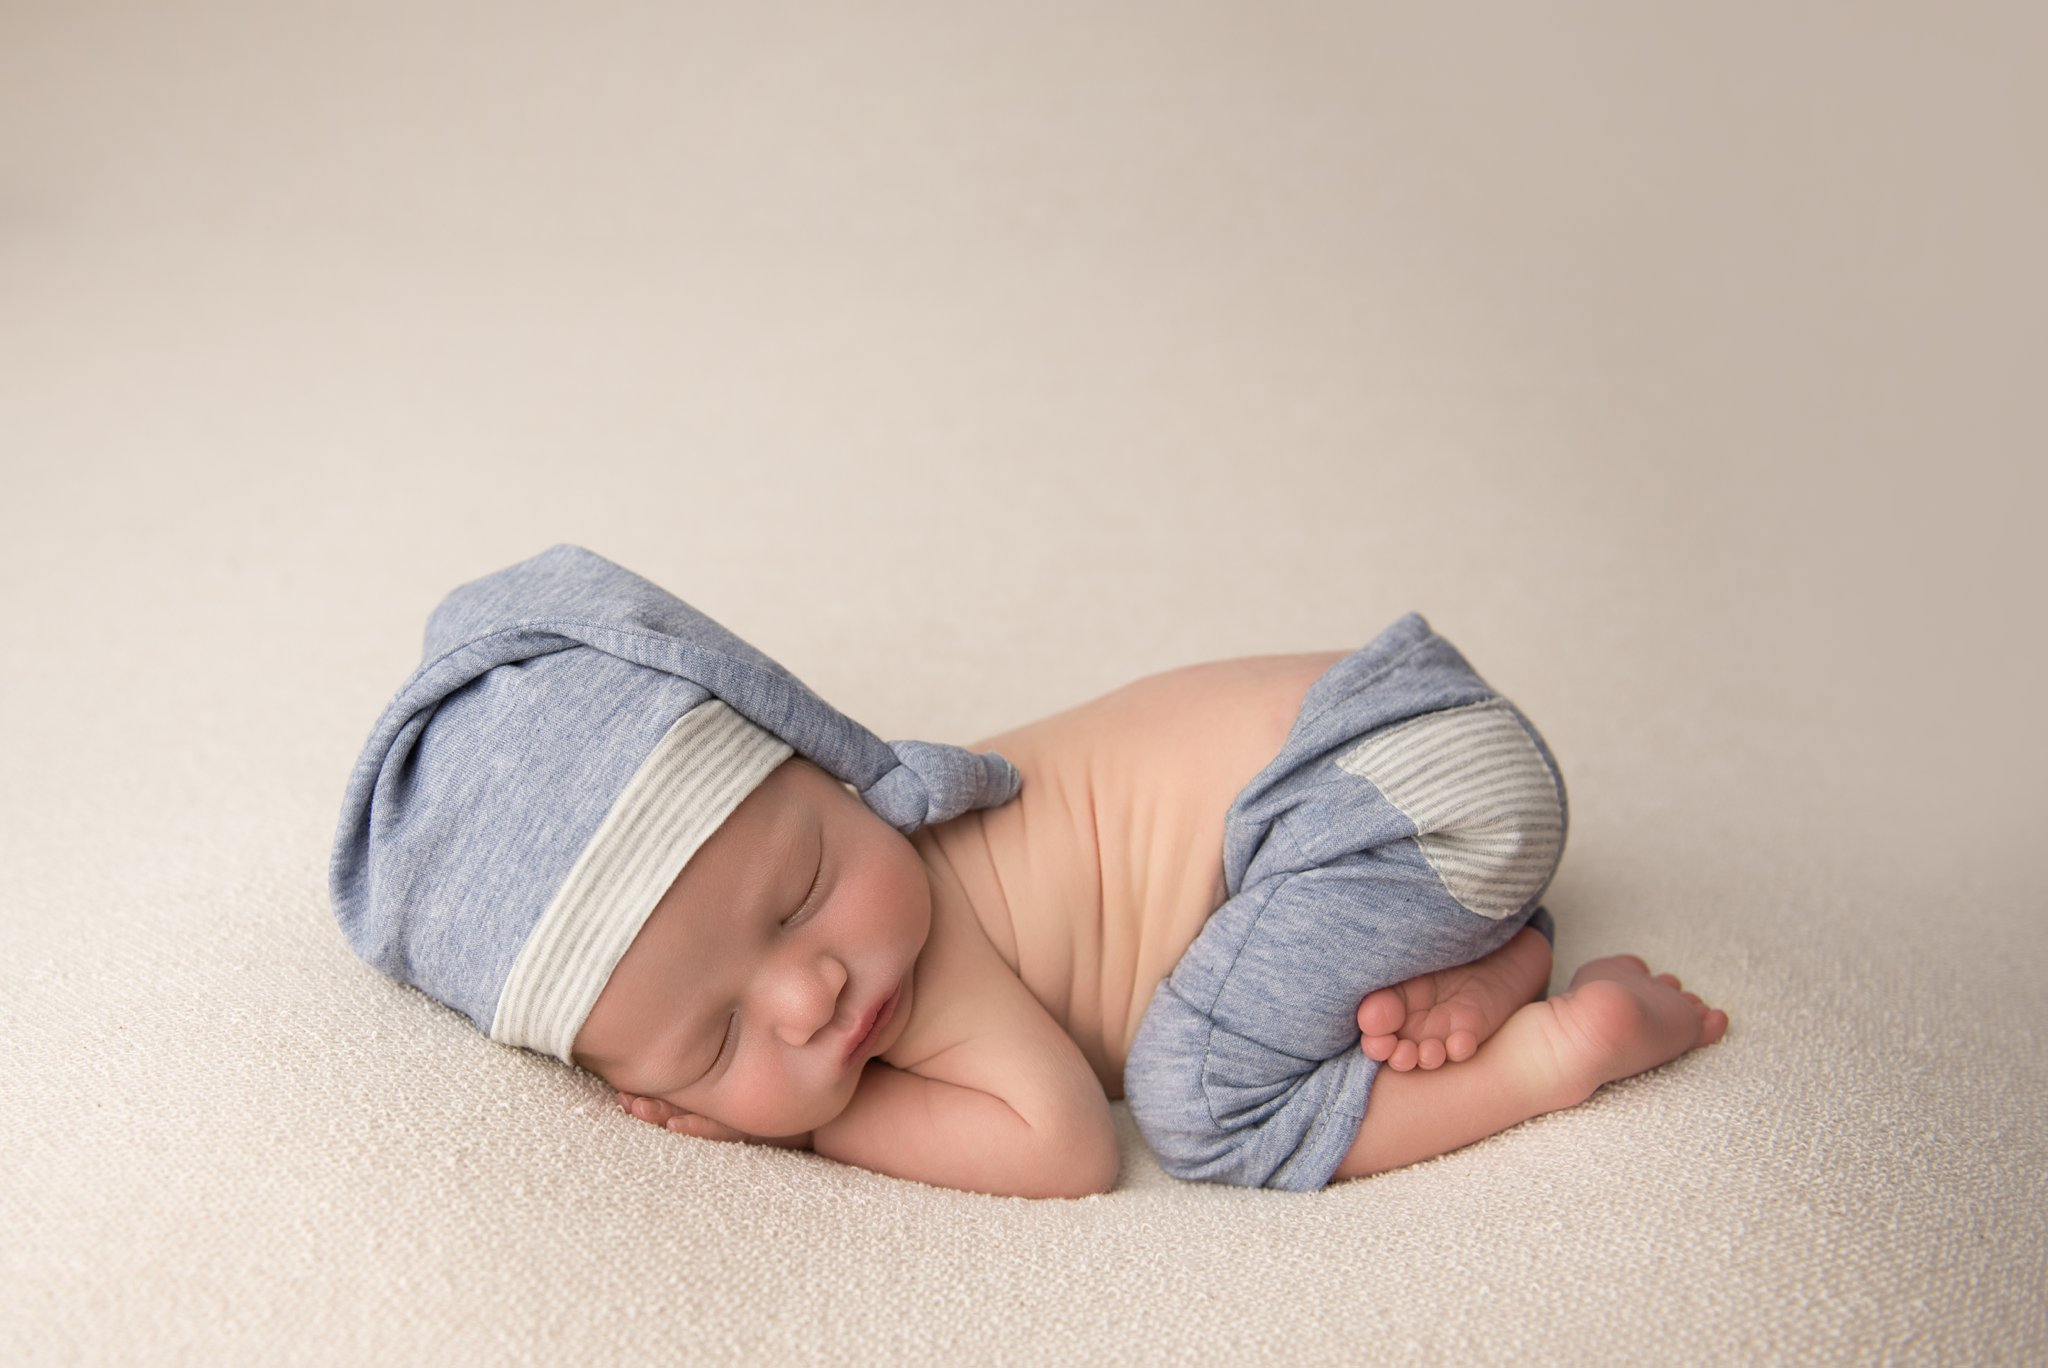 columbus ohio newborn photographer poses baby boy in blue and gray pants and hat set for newborn photography session